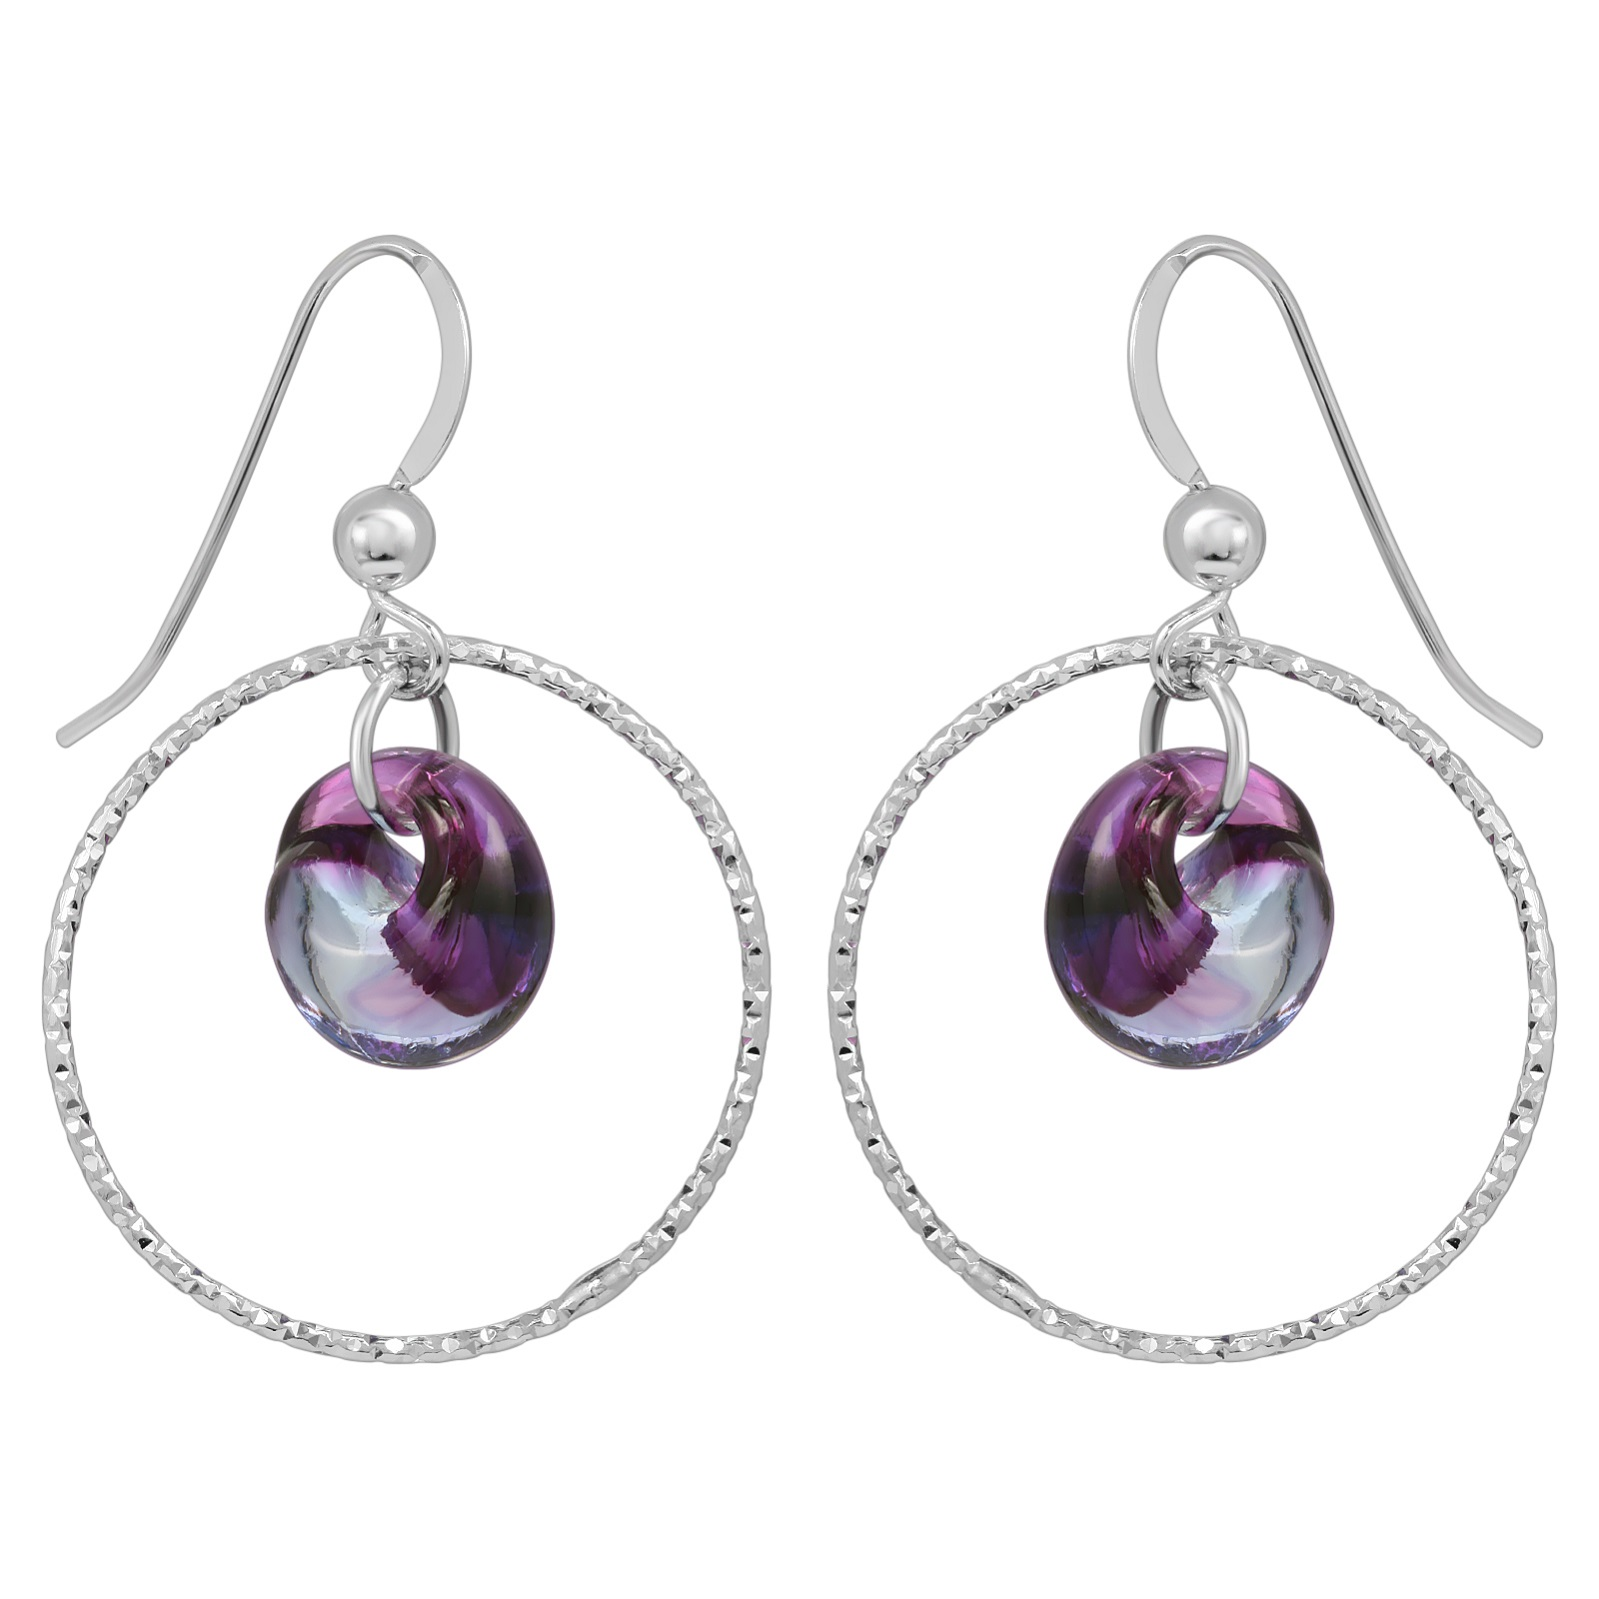 Diamond Cut Hoops Earrings - Mystic Purple